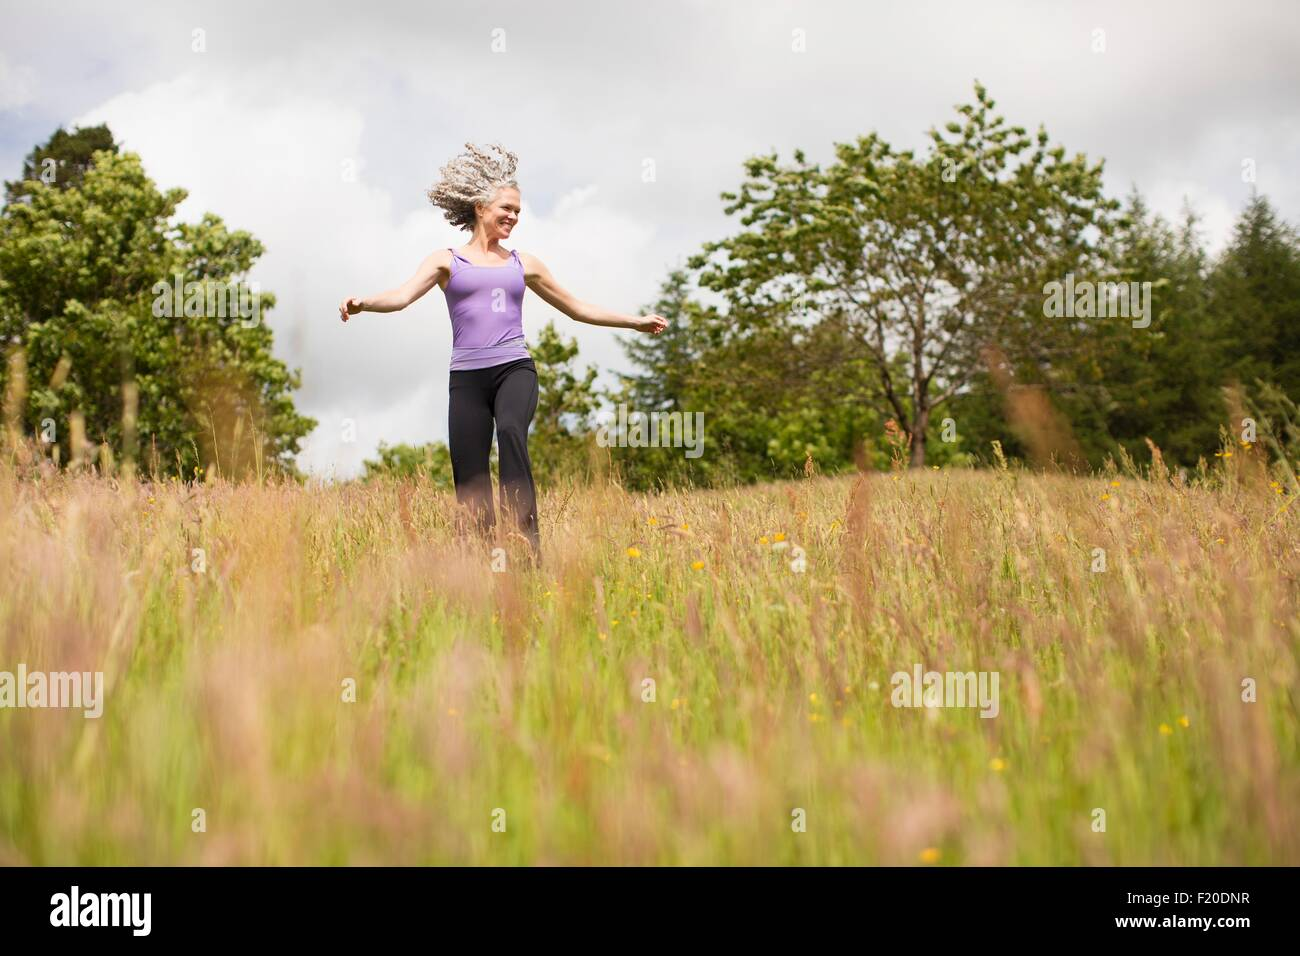 Mature woman with long grey hair running through field - Stock Image